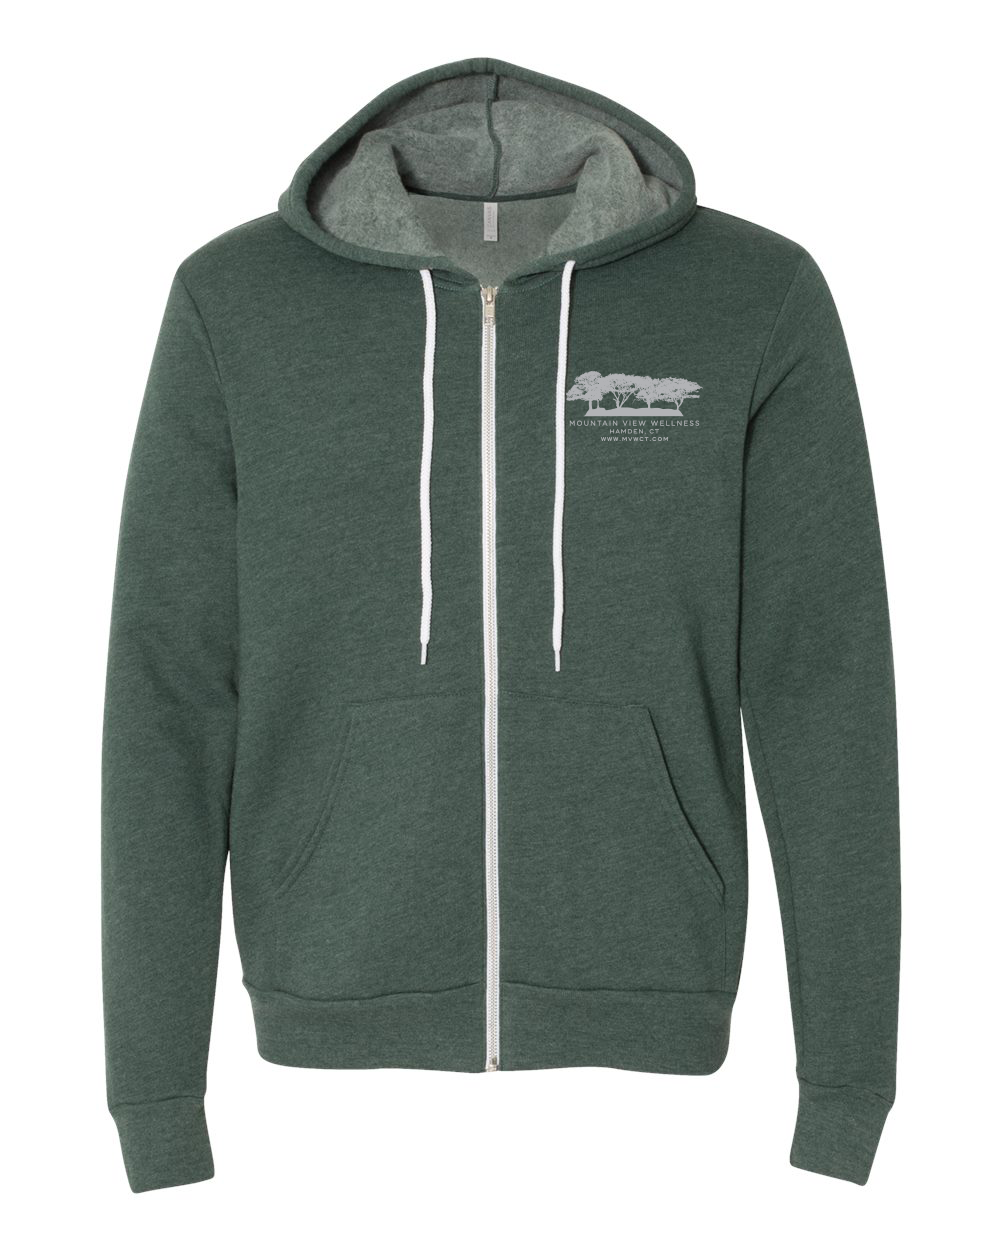 3739-Heather-Forest-Hoodie-Front (1).png